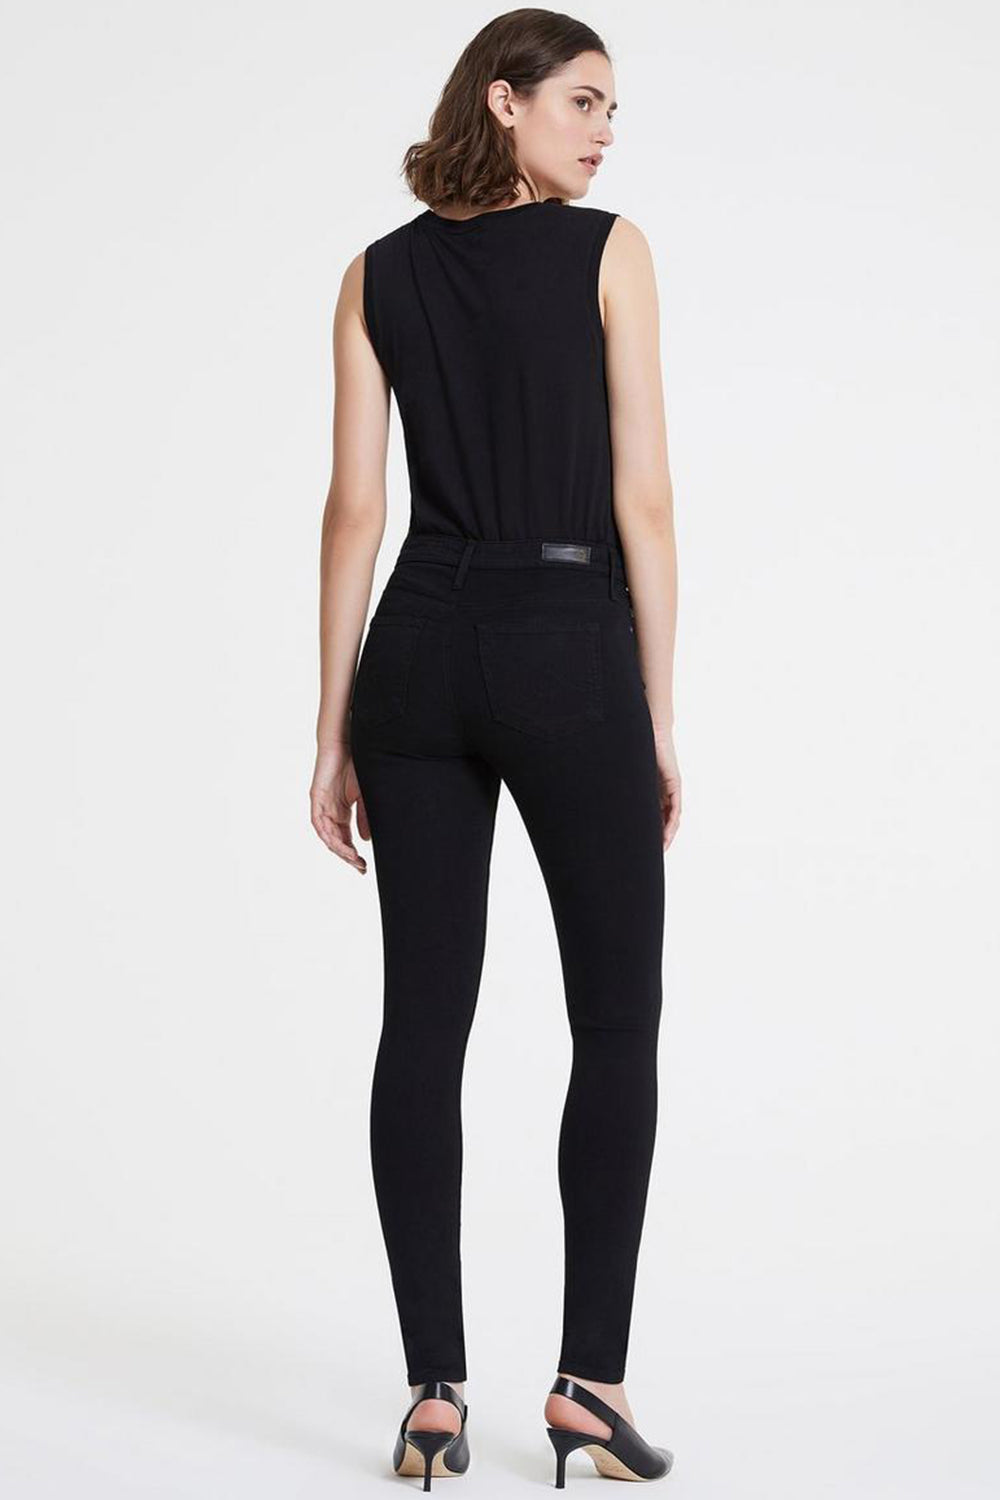 ADRIANO GOLDSCHMIED - FARRAH SKINNY SUPER BLACK